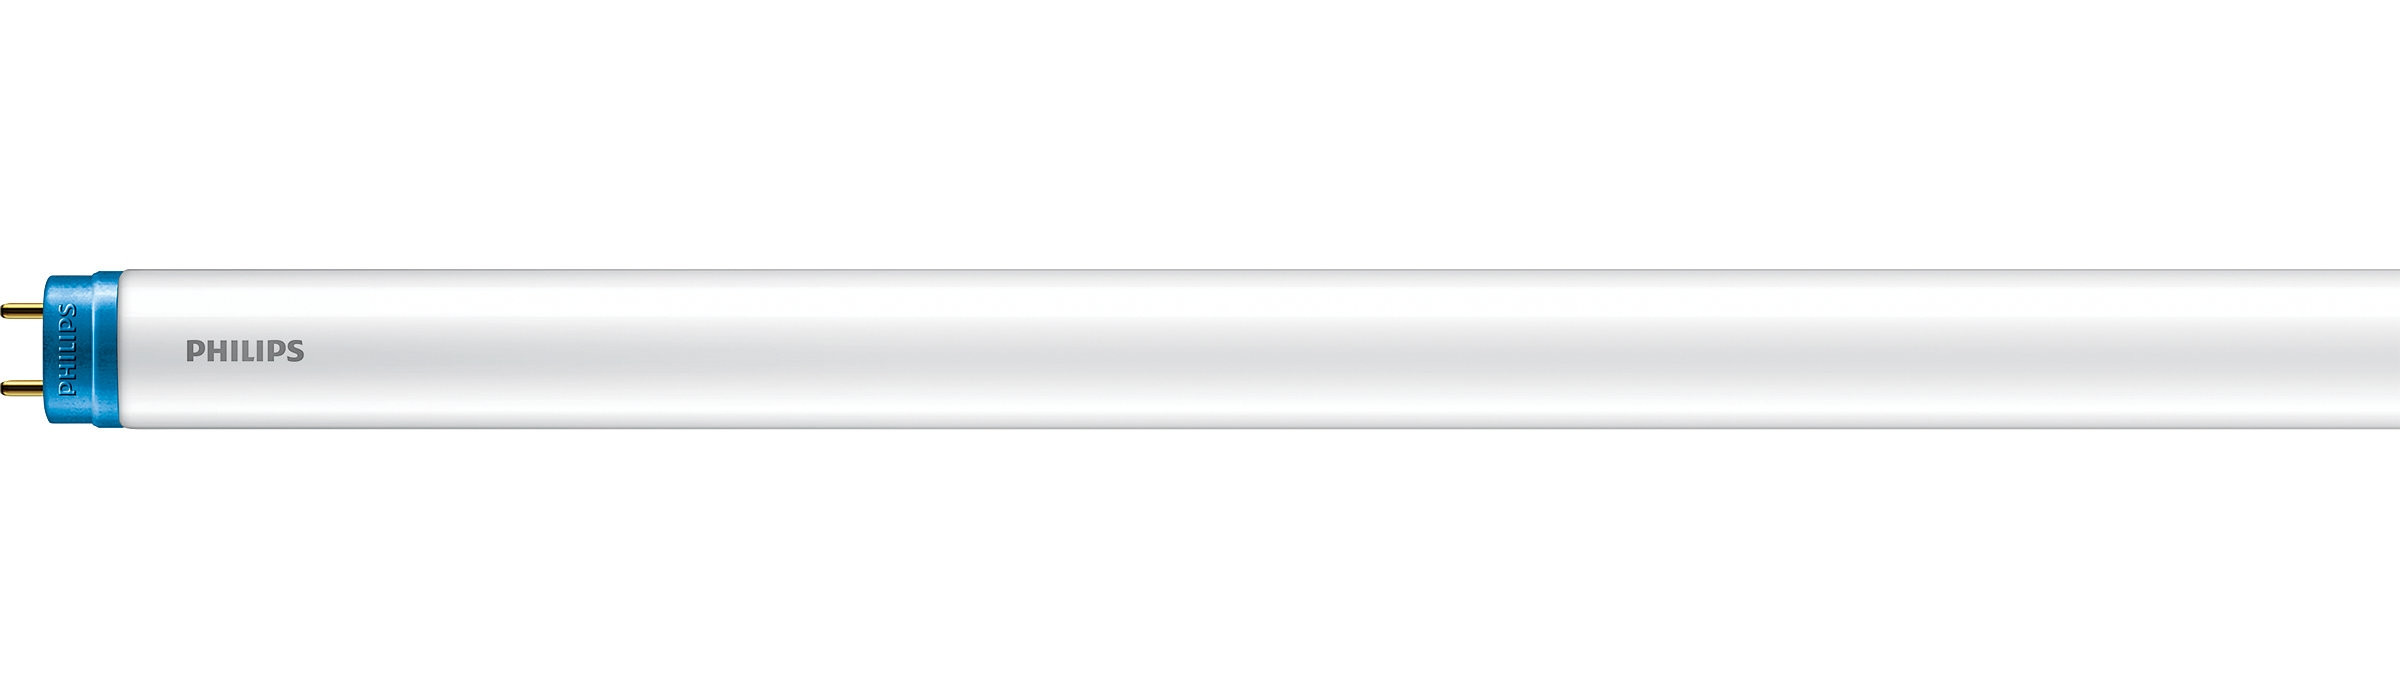 LED Röhre Philips CoreLEDtube 240° - 4000K neutralweiss - 8W - 800 Lumen